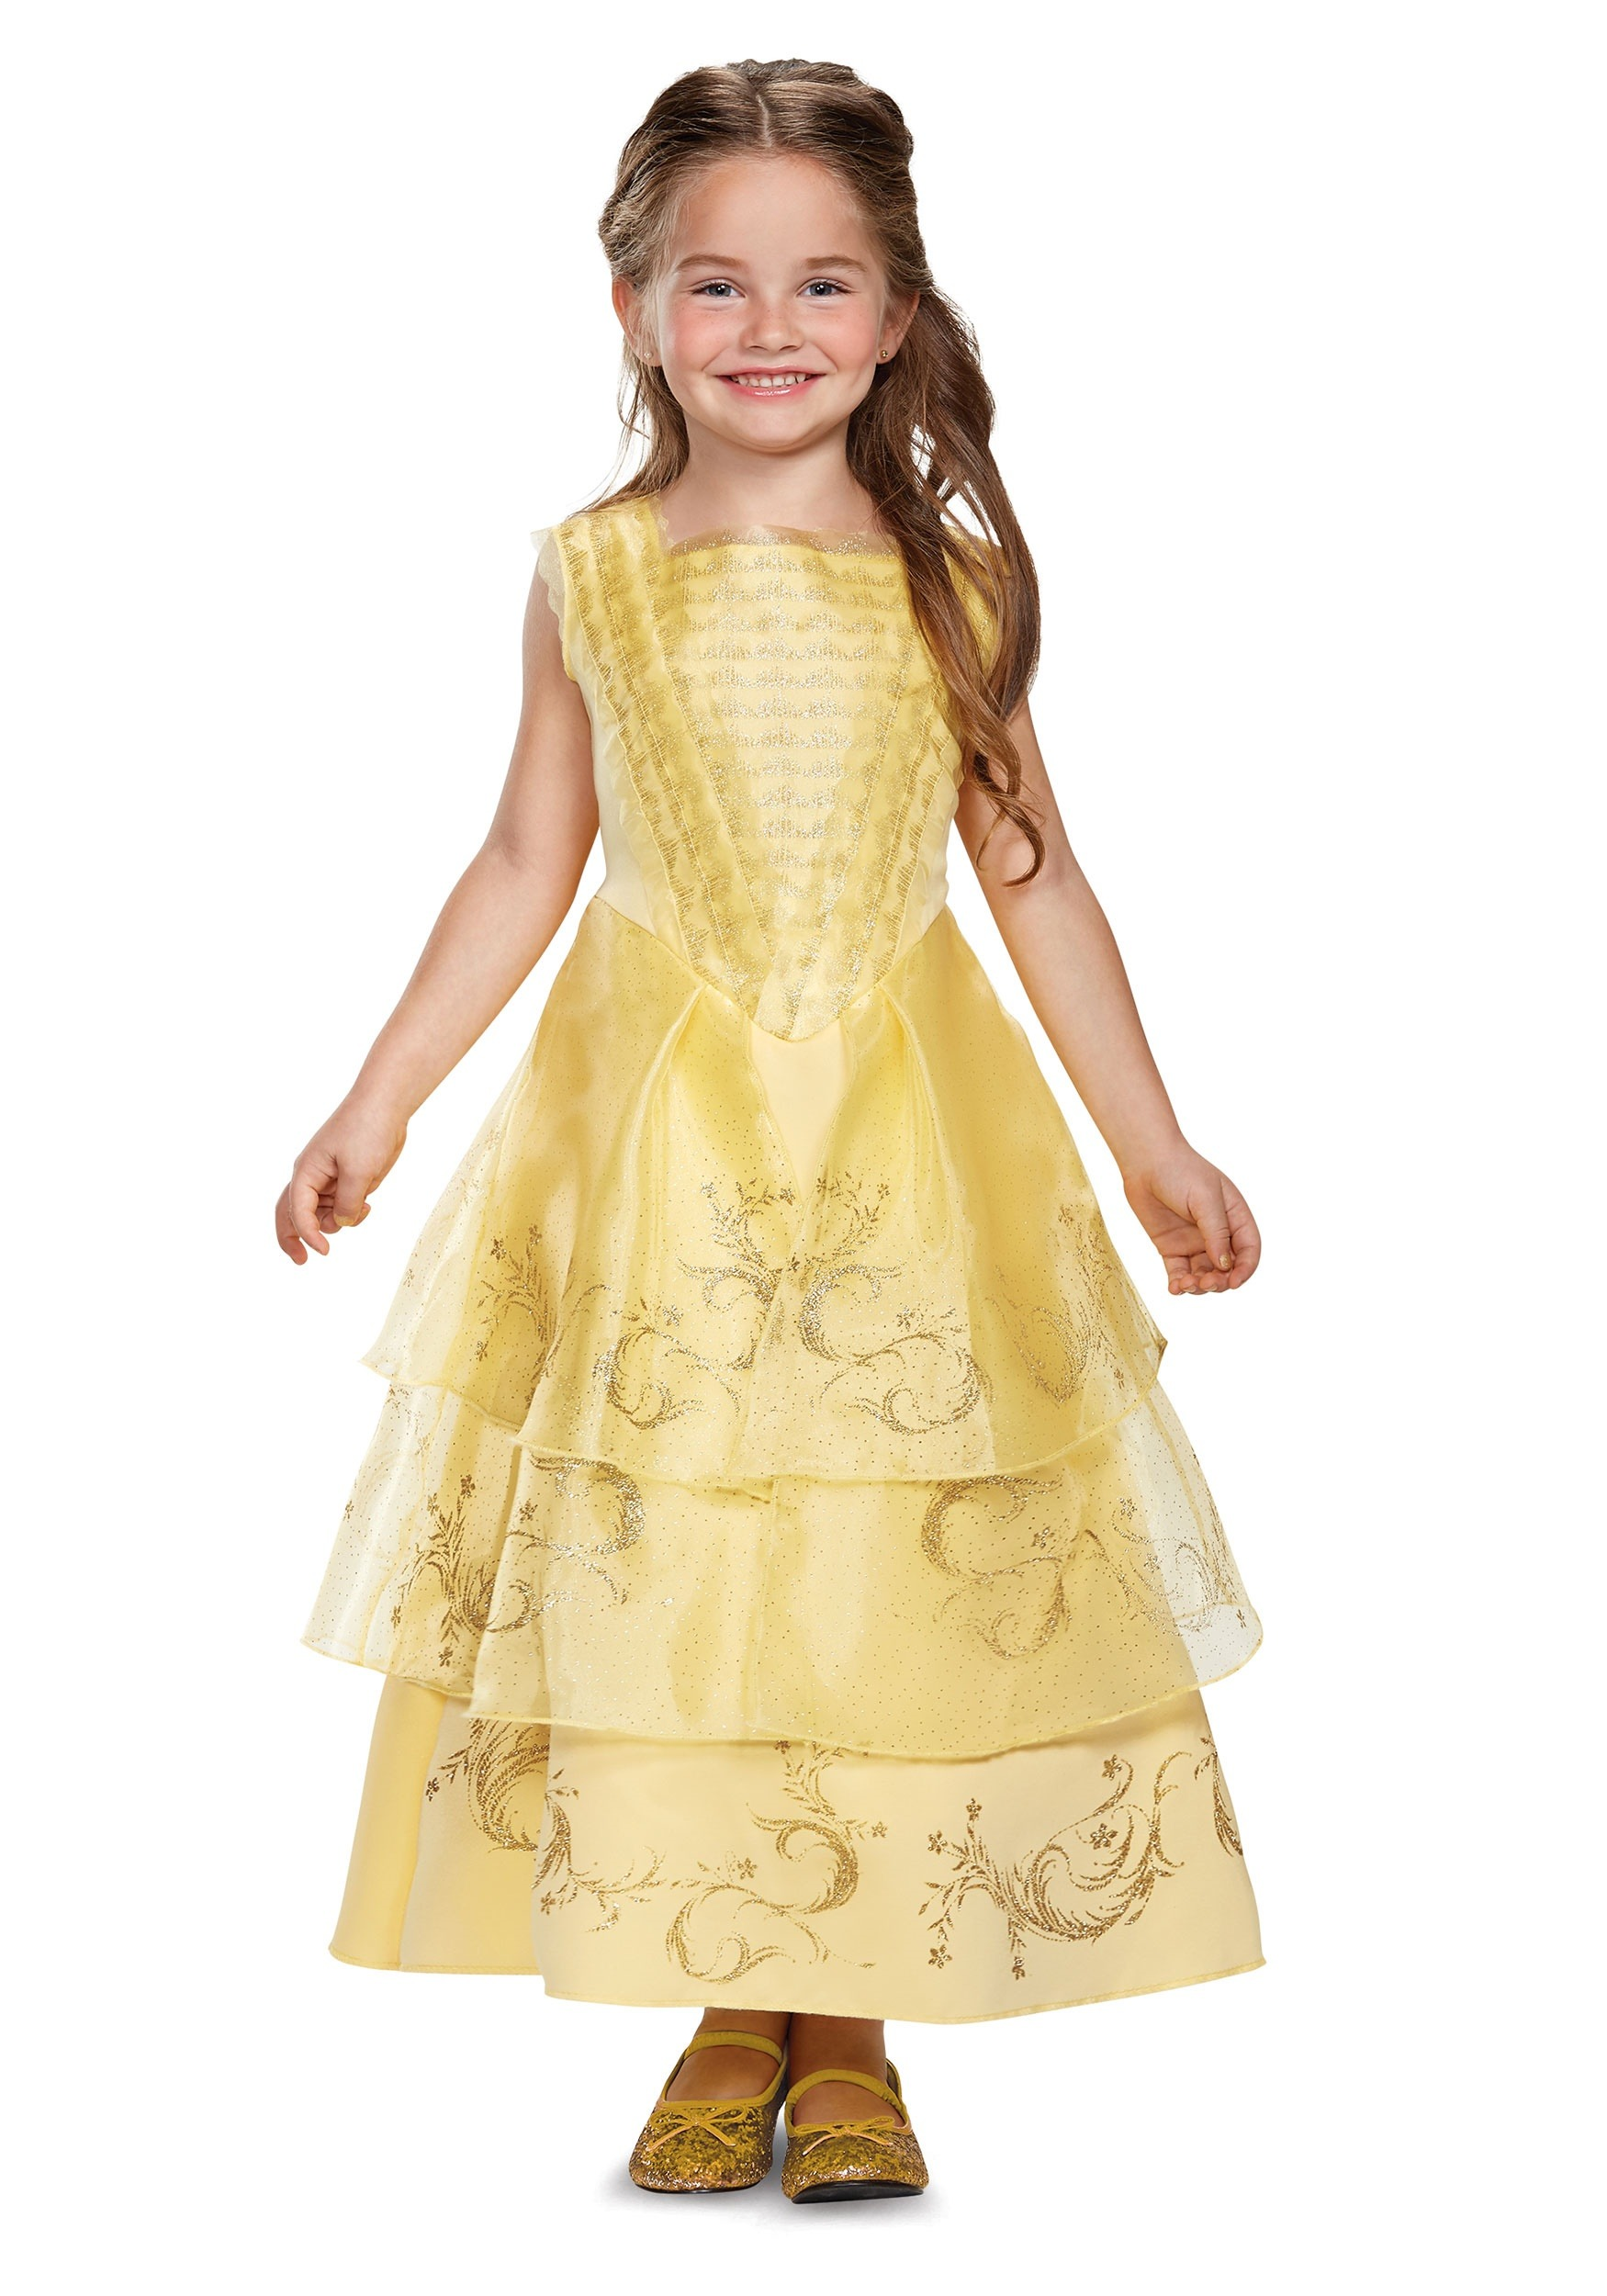 Belle Ball Gown Deluxe Child  sc 1 st  Halloween Costumes & Disney Costumes For Kids - HalloweenCostumes.com